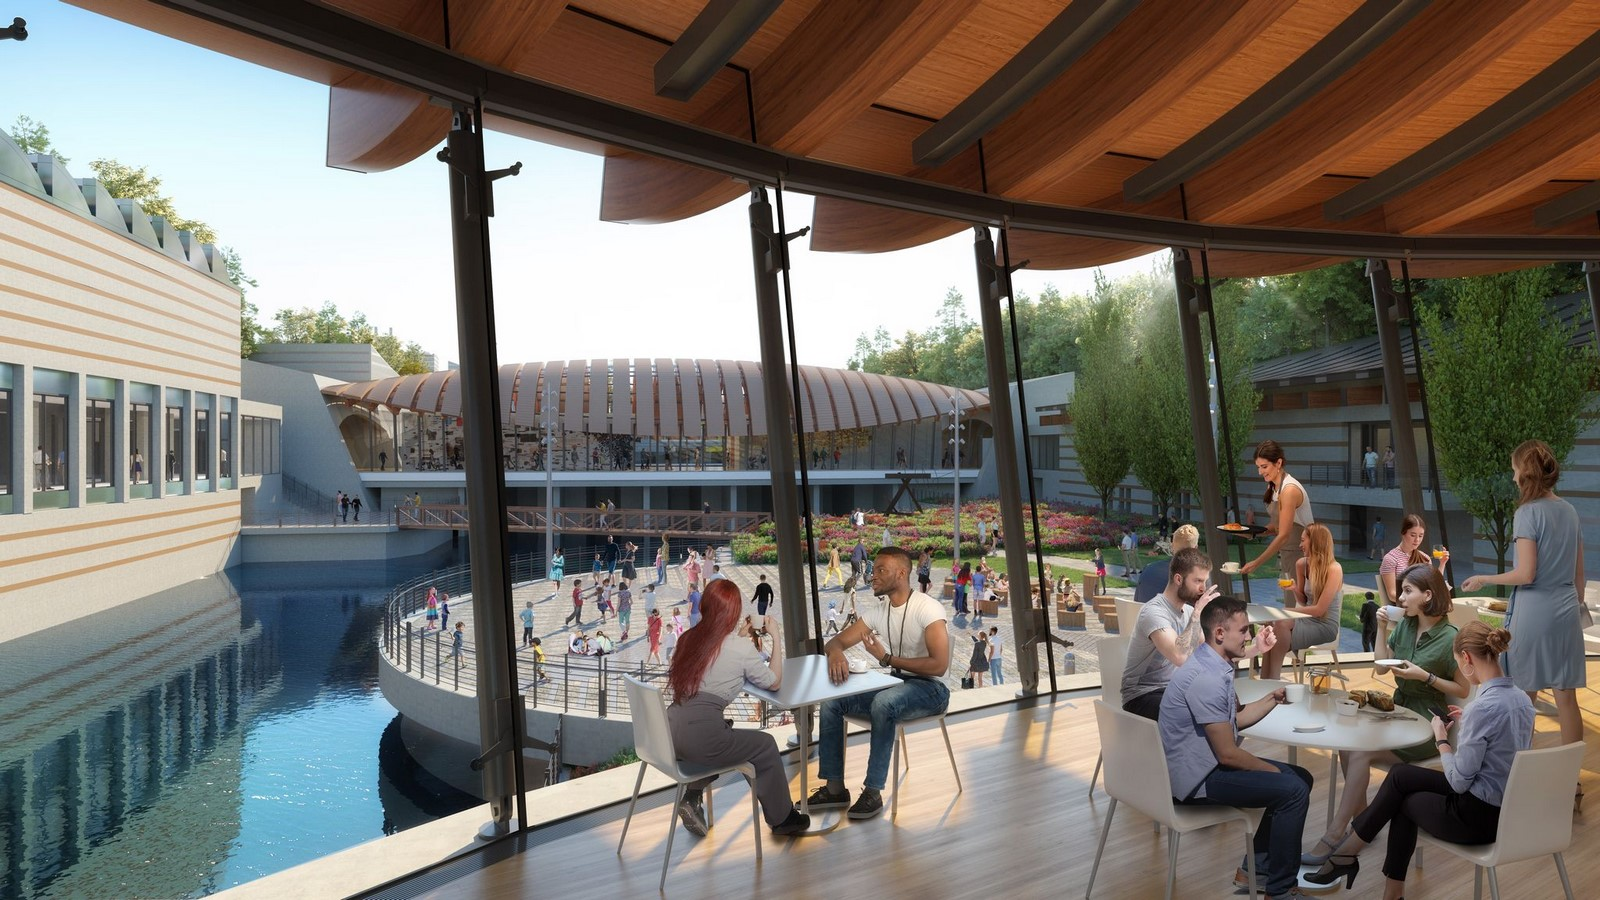 Crystal Bridges Museum Of American Art In Bentonville expansion plans revealed by Safdie Architects - Sheet10